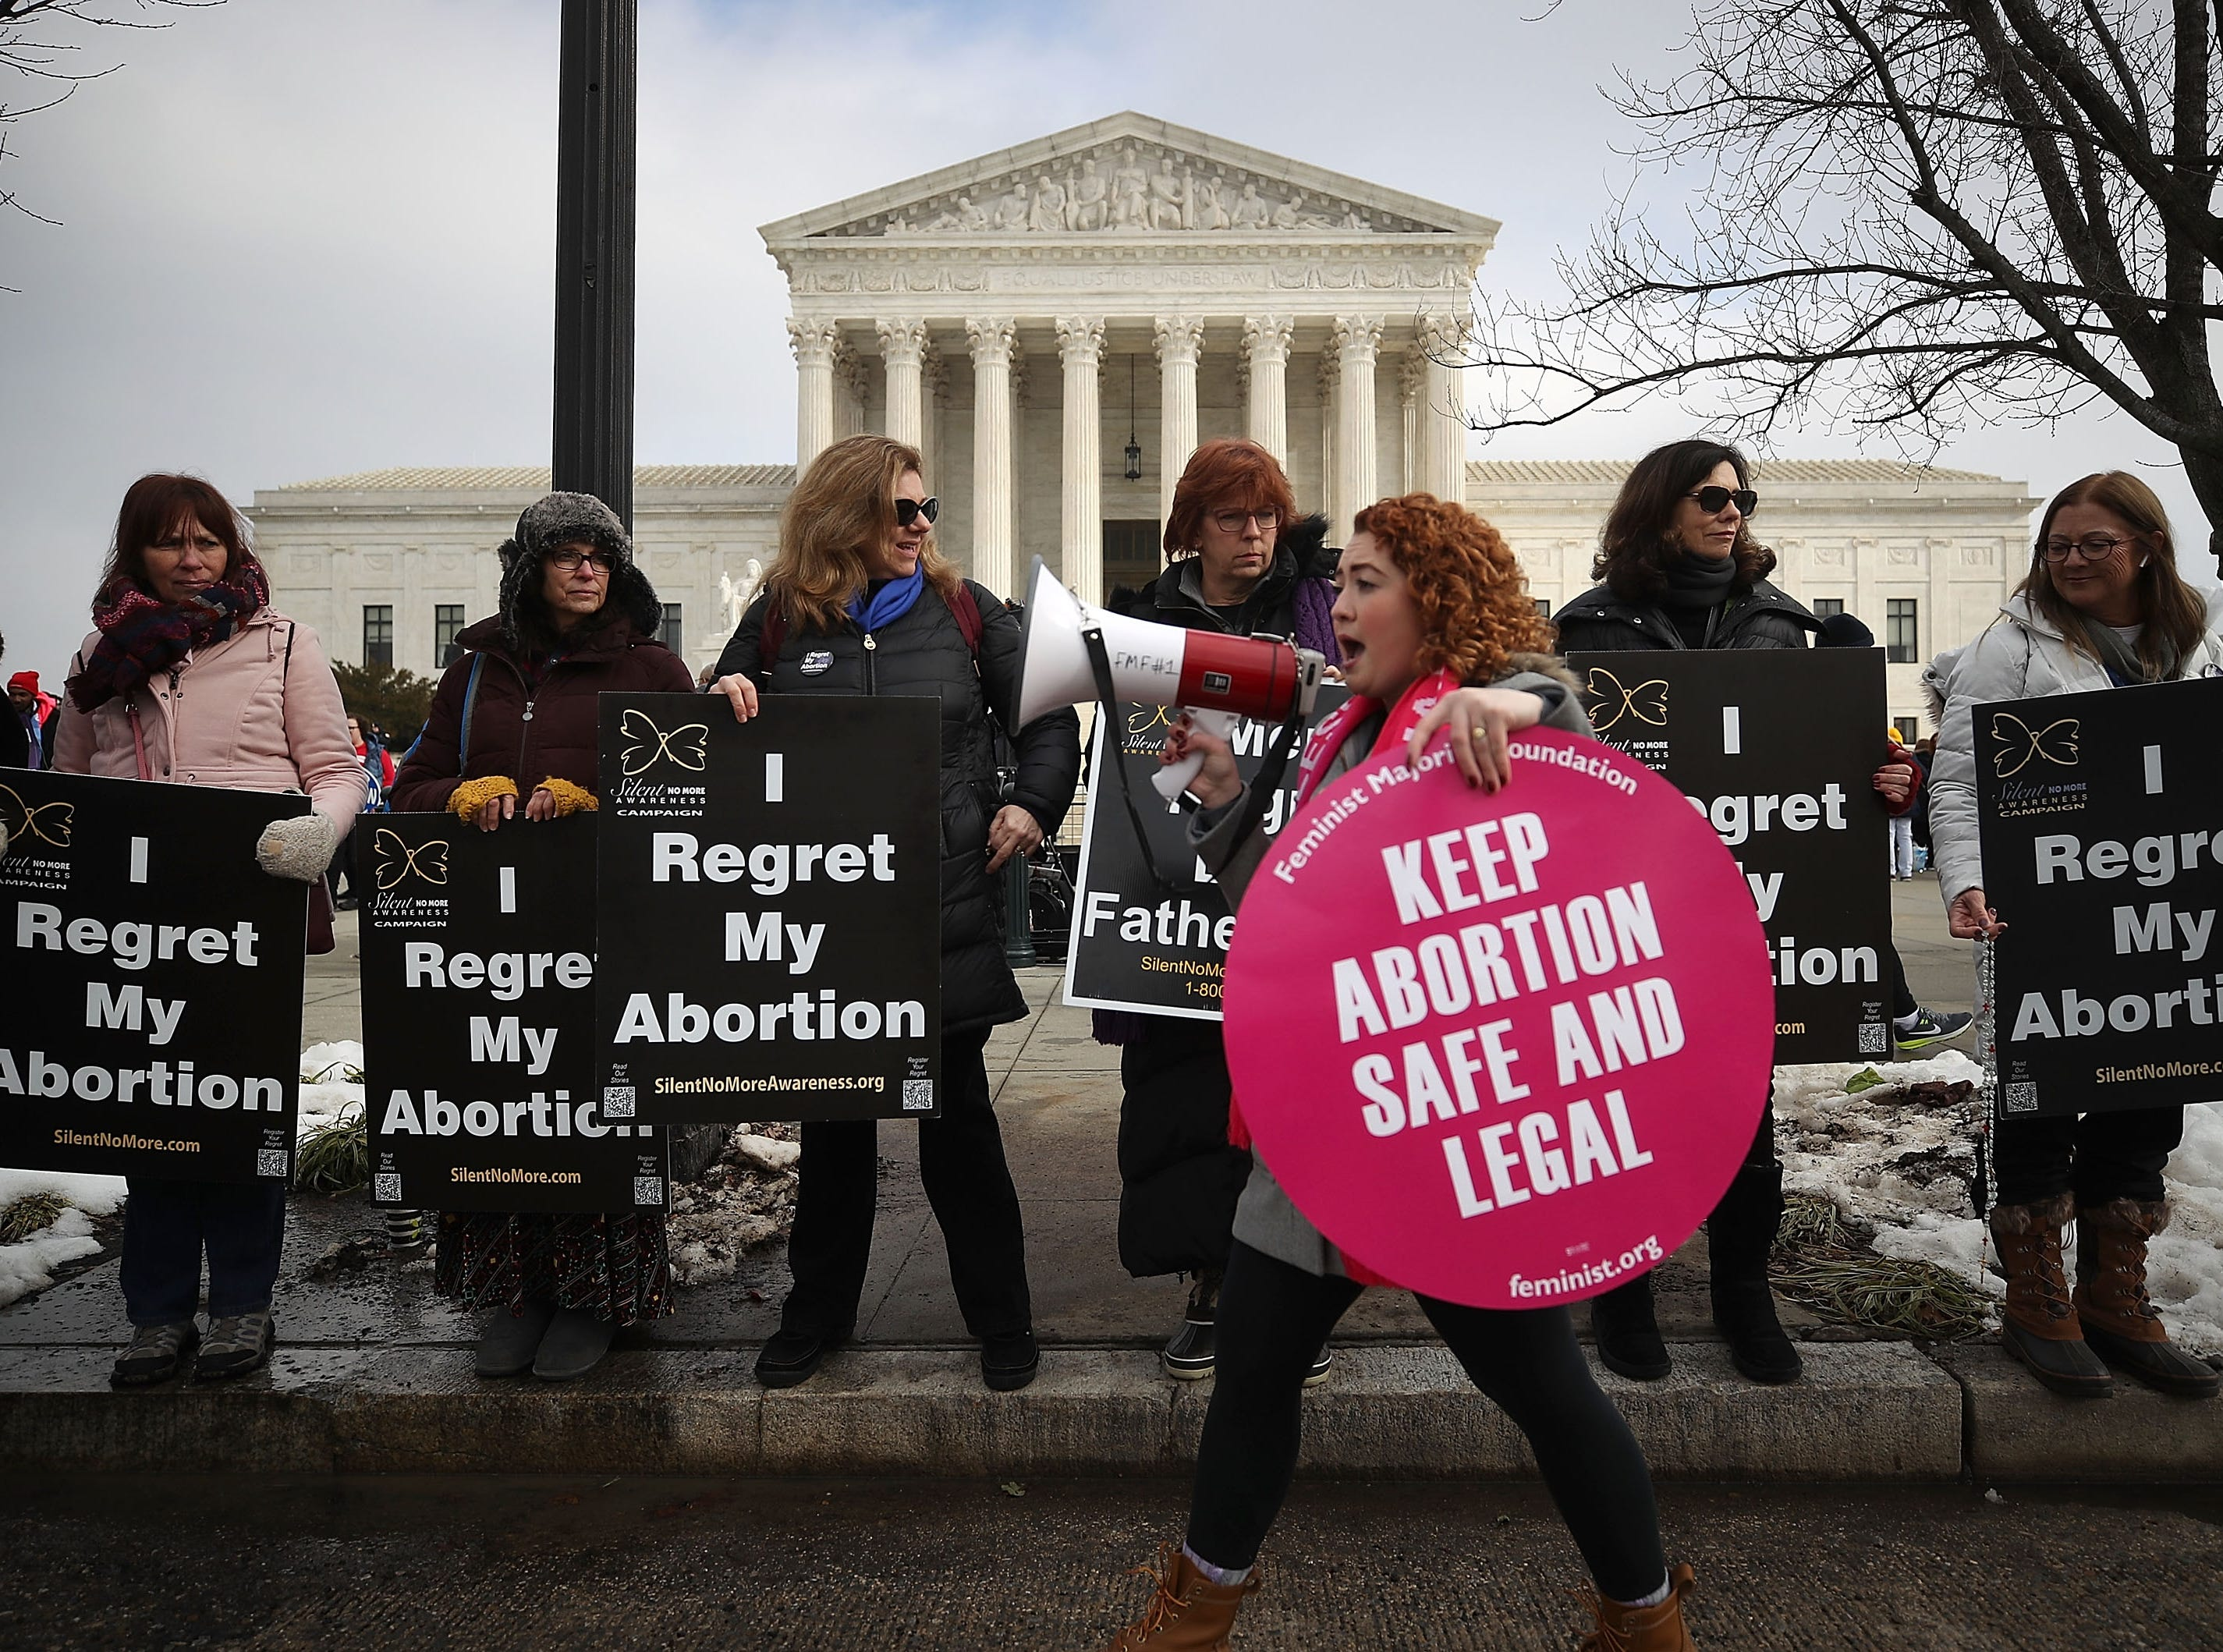 Protesters on both sides of the abortion issue gather in front of the U.S. Supreme Court building during the Right To Life March, on Jan. 18, 2019 in Washington, DC. The Right to Life Campaign held its annual March For Life rally and march to the U.S. Supreme Court protesting the high court's 1973 Roe V. Wade decision making abortion legal.